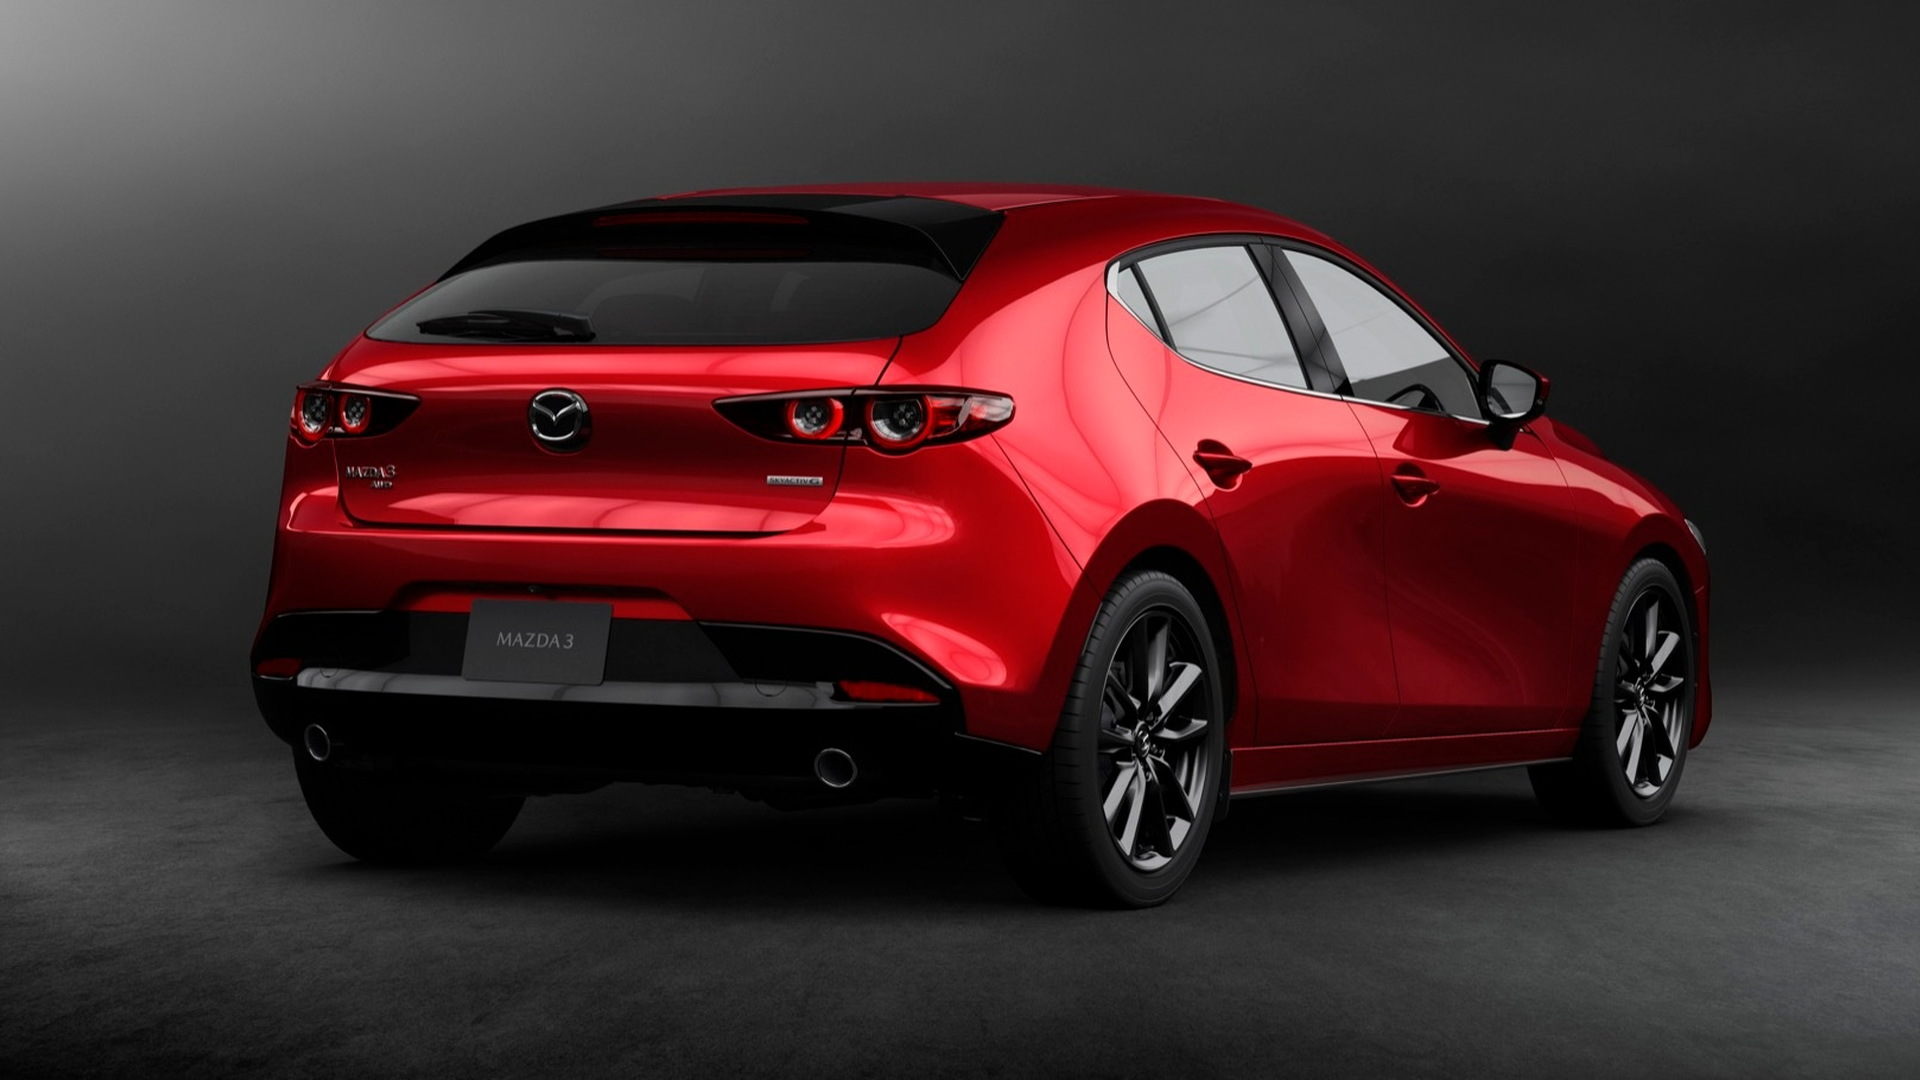 2019 Mazda 3 Hatchback, Redesign, Release Date, & Price >> Car Spy Shots News Reviews And Insights Motor Authority